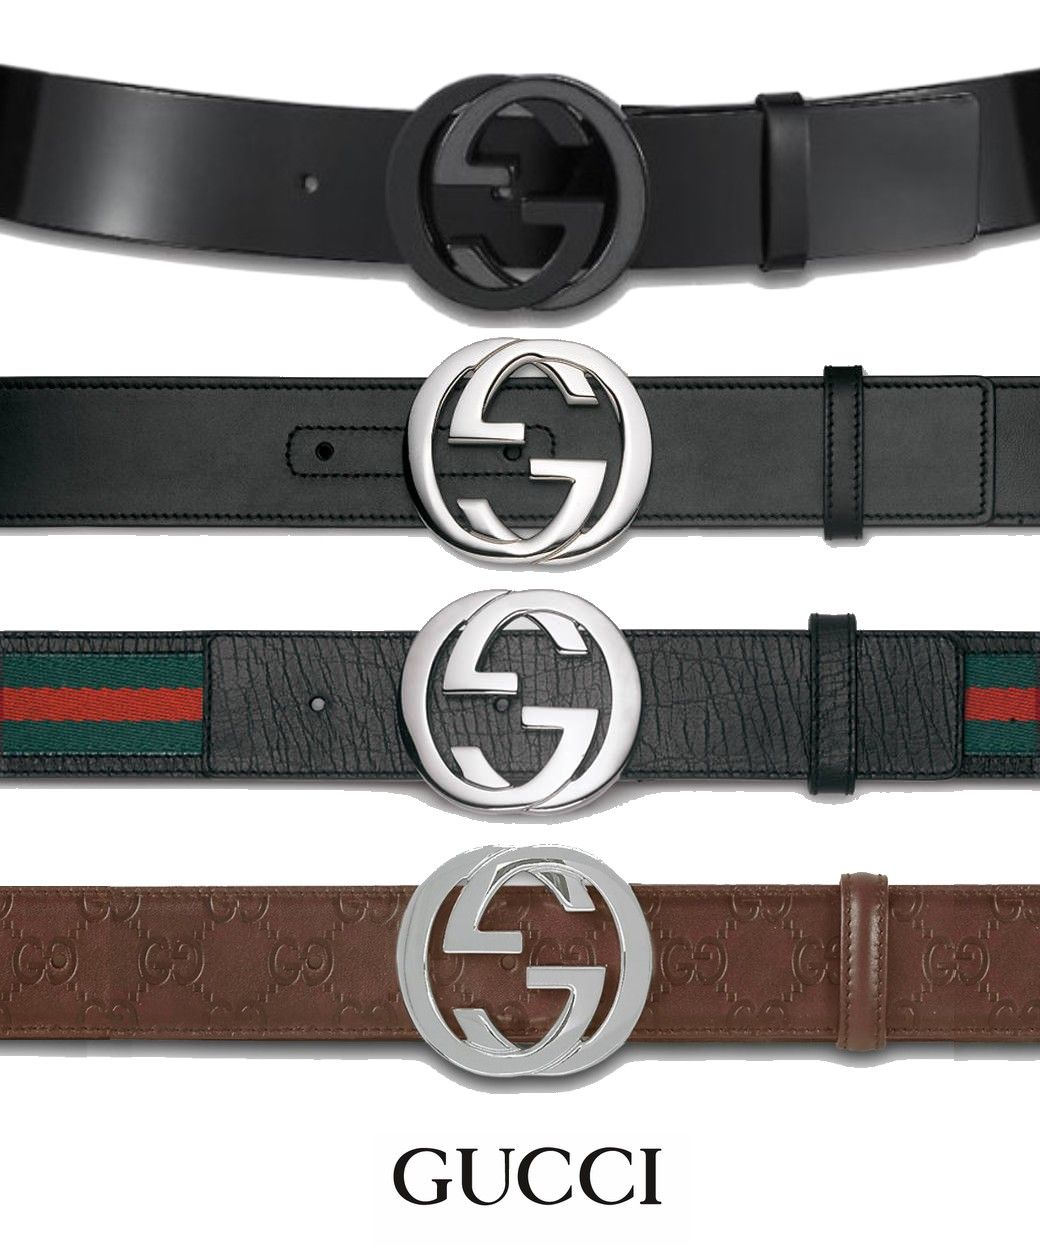 95a112f4424 gucci belt -love them all!